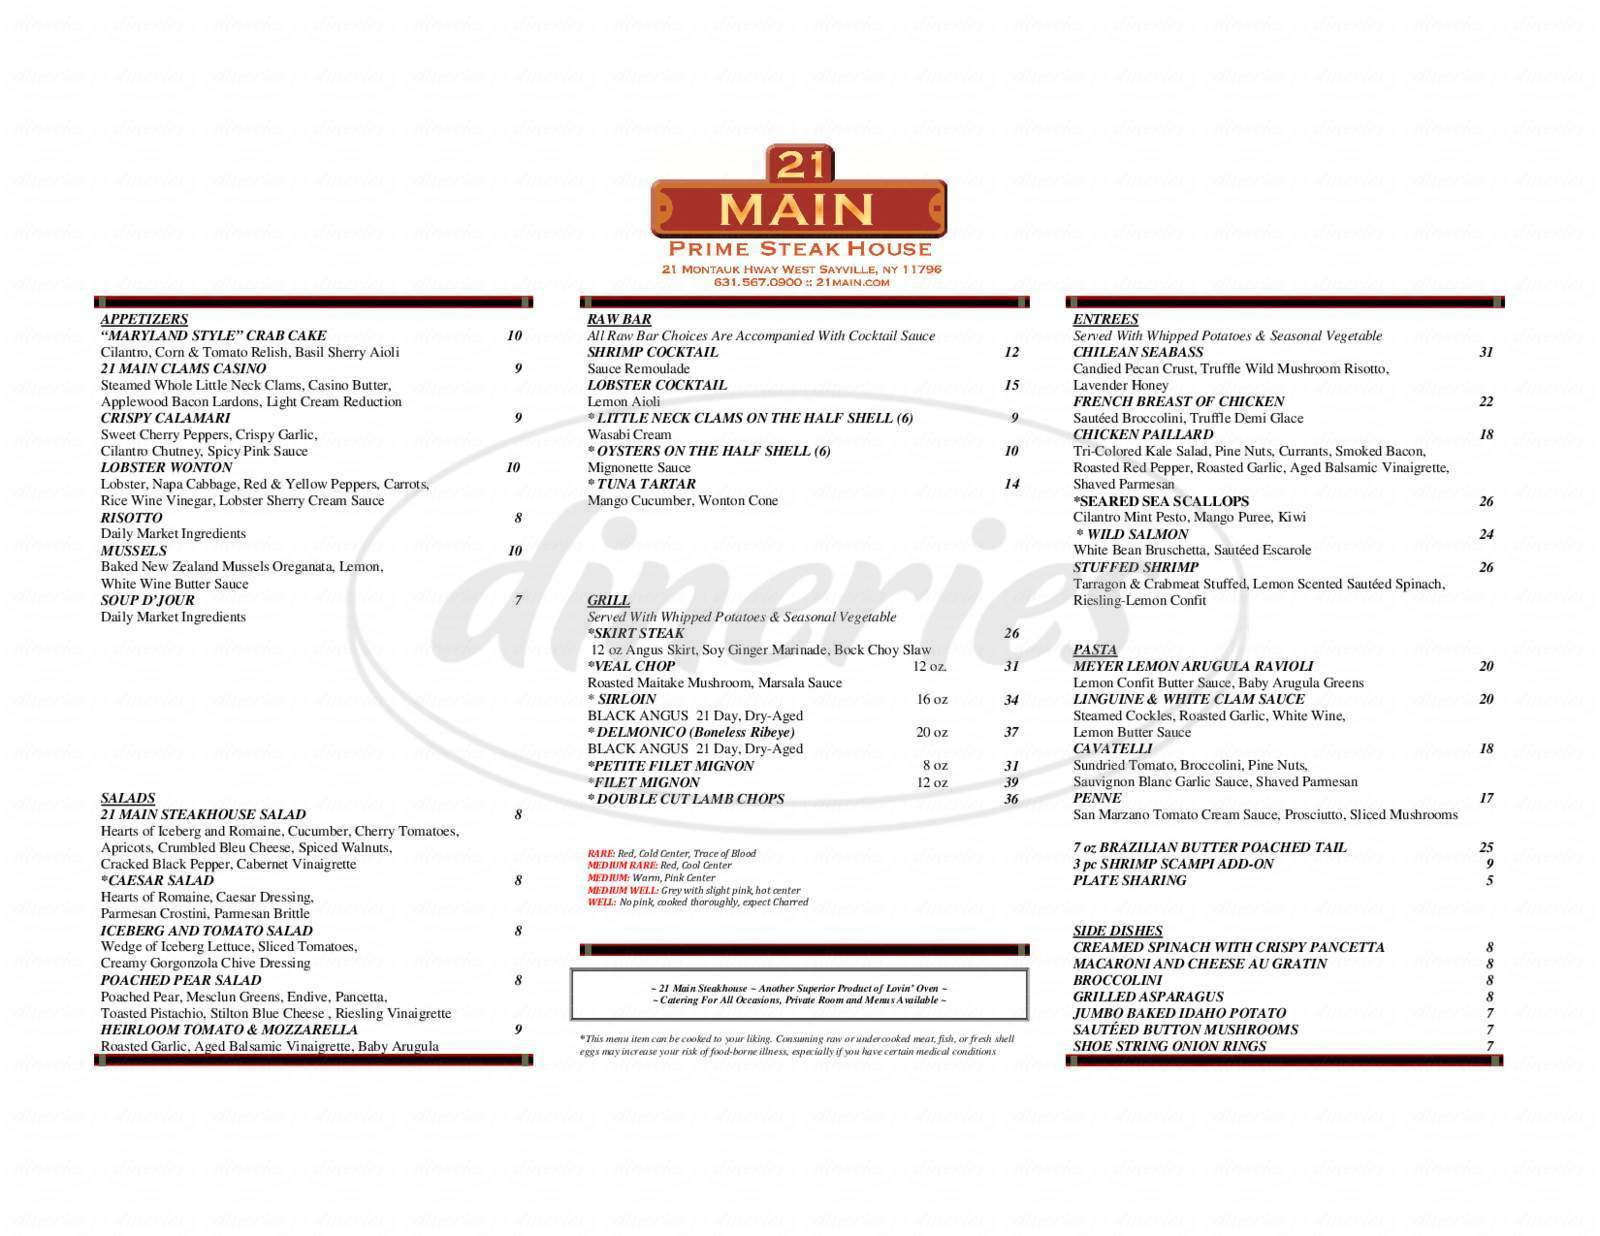 menu for 21 Main